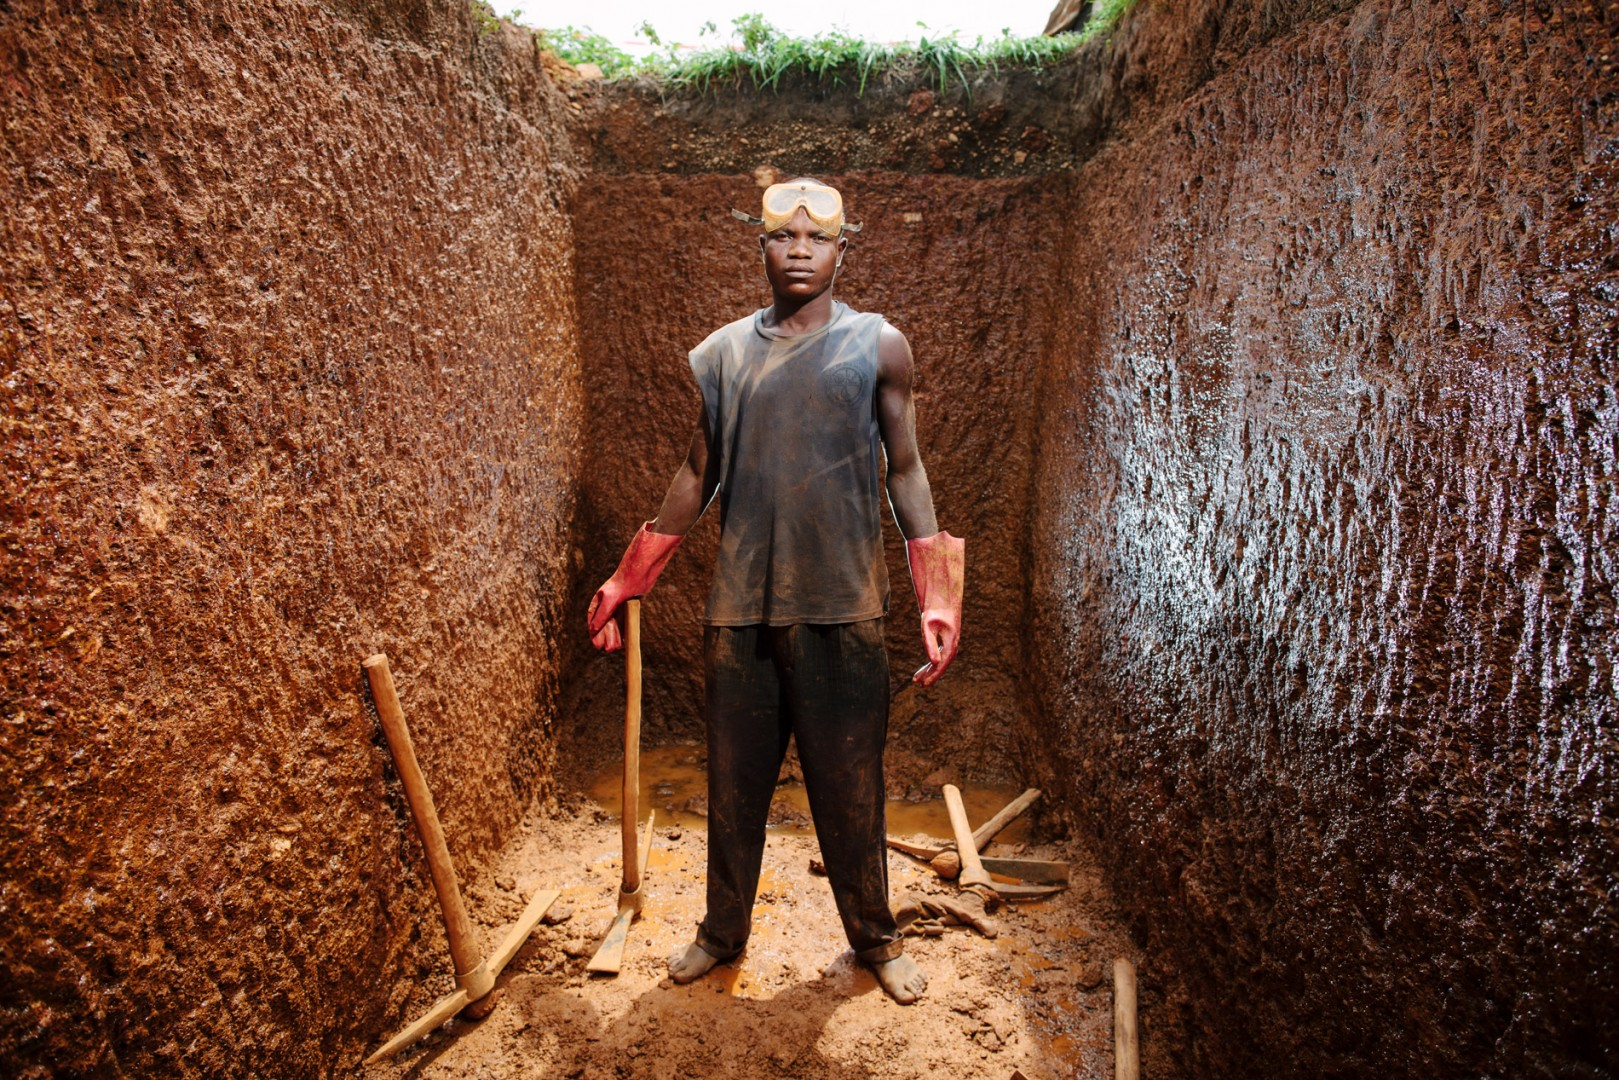 Moina Kallon AKA Jagga, labourer, Jagga and a couple of other guys dug a fifteen foot cesspit in the heat.